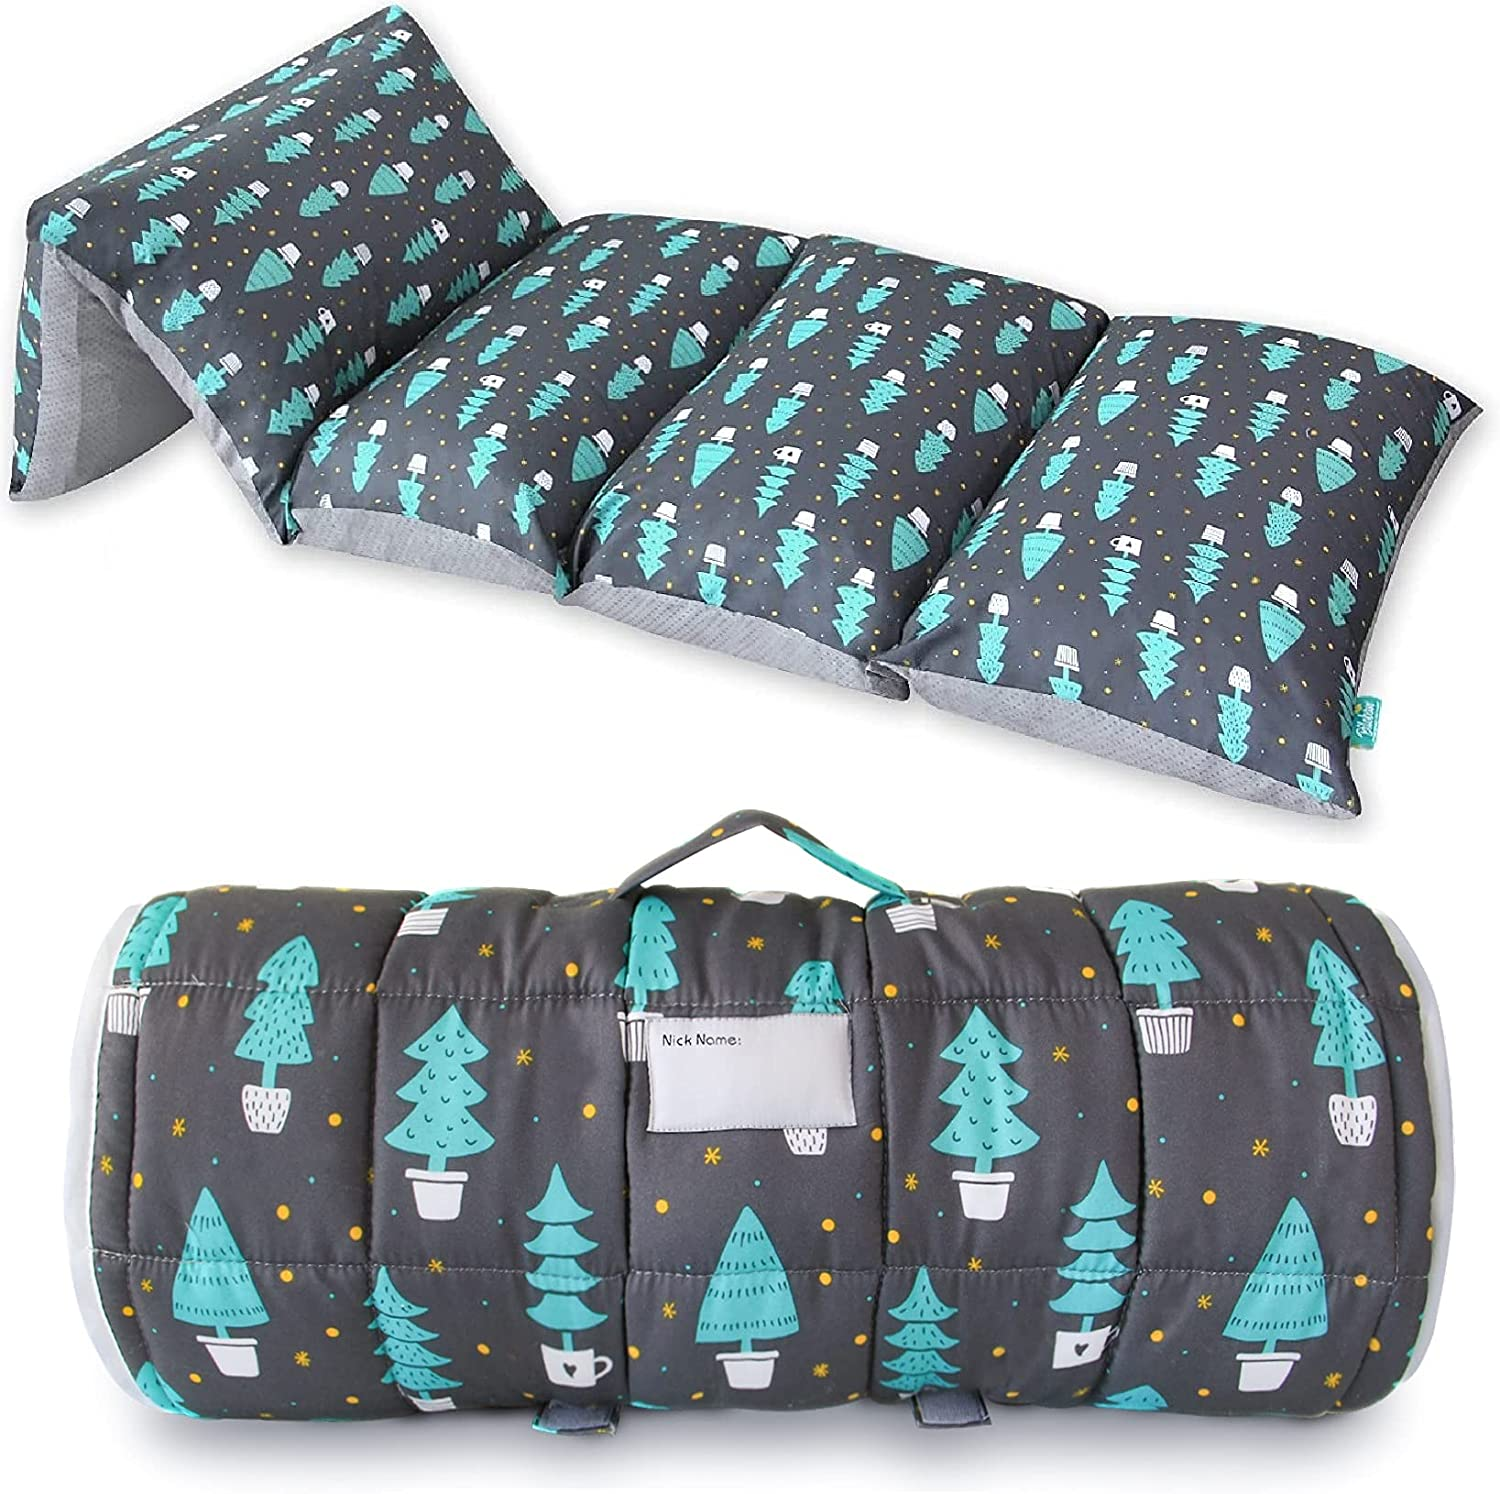 Toddler Nap Max 90% OFF Mat 5 Pillow for Max 76% OFF Woods Sleepover Cover Dark